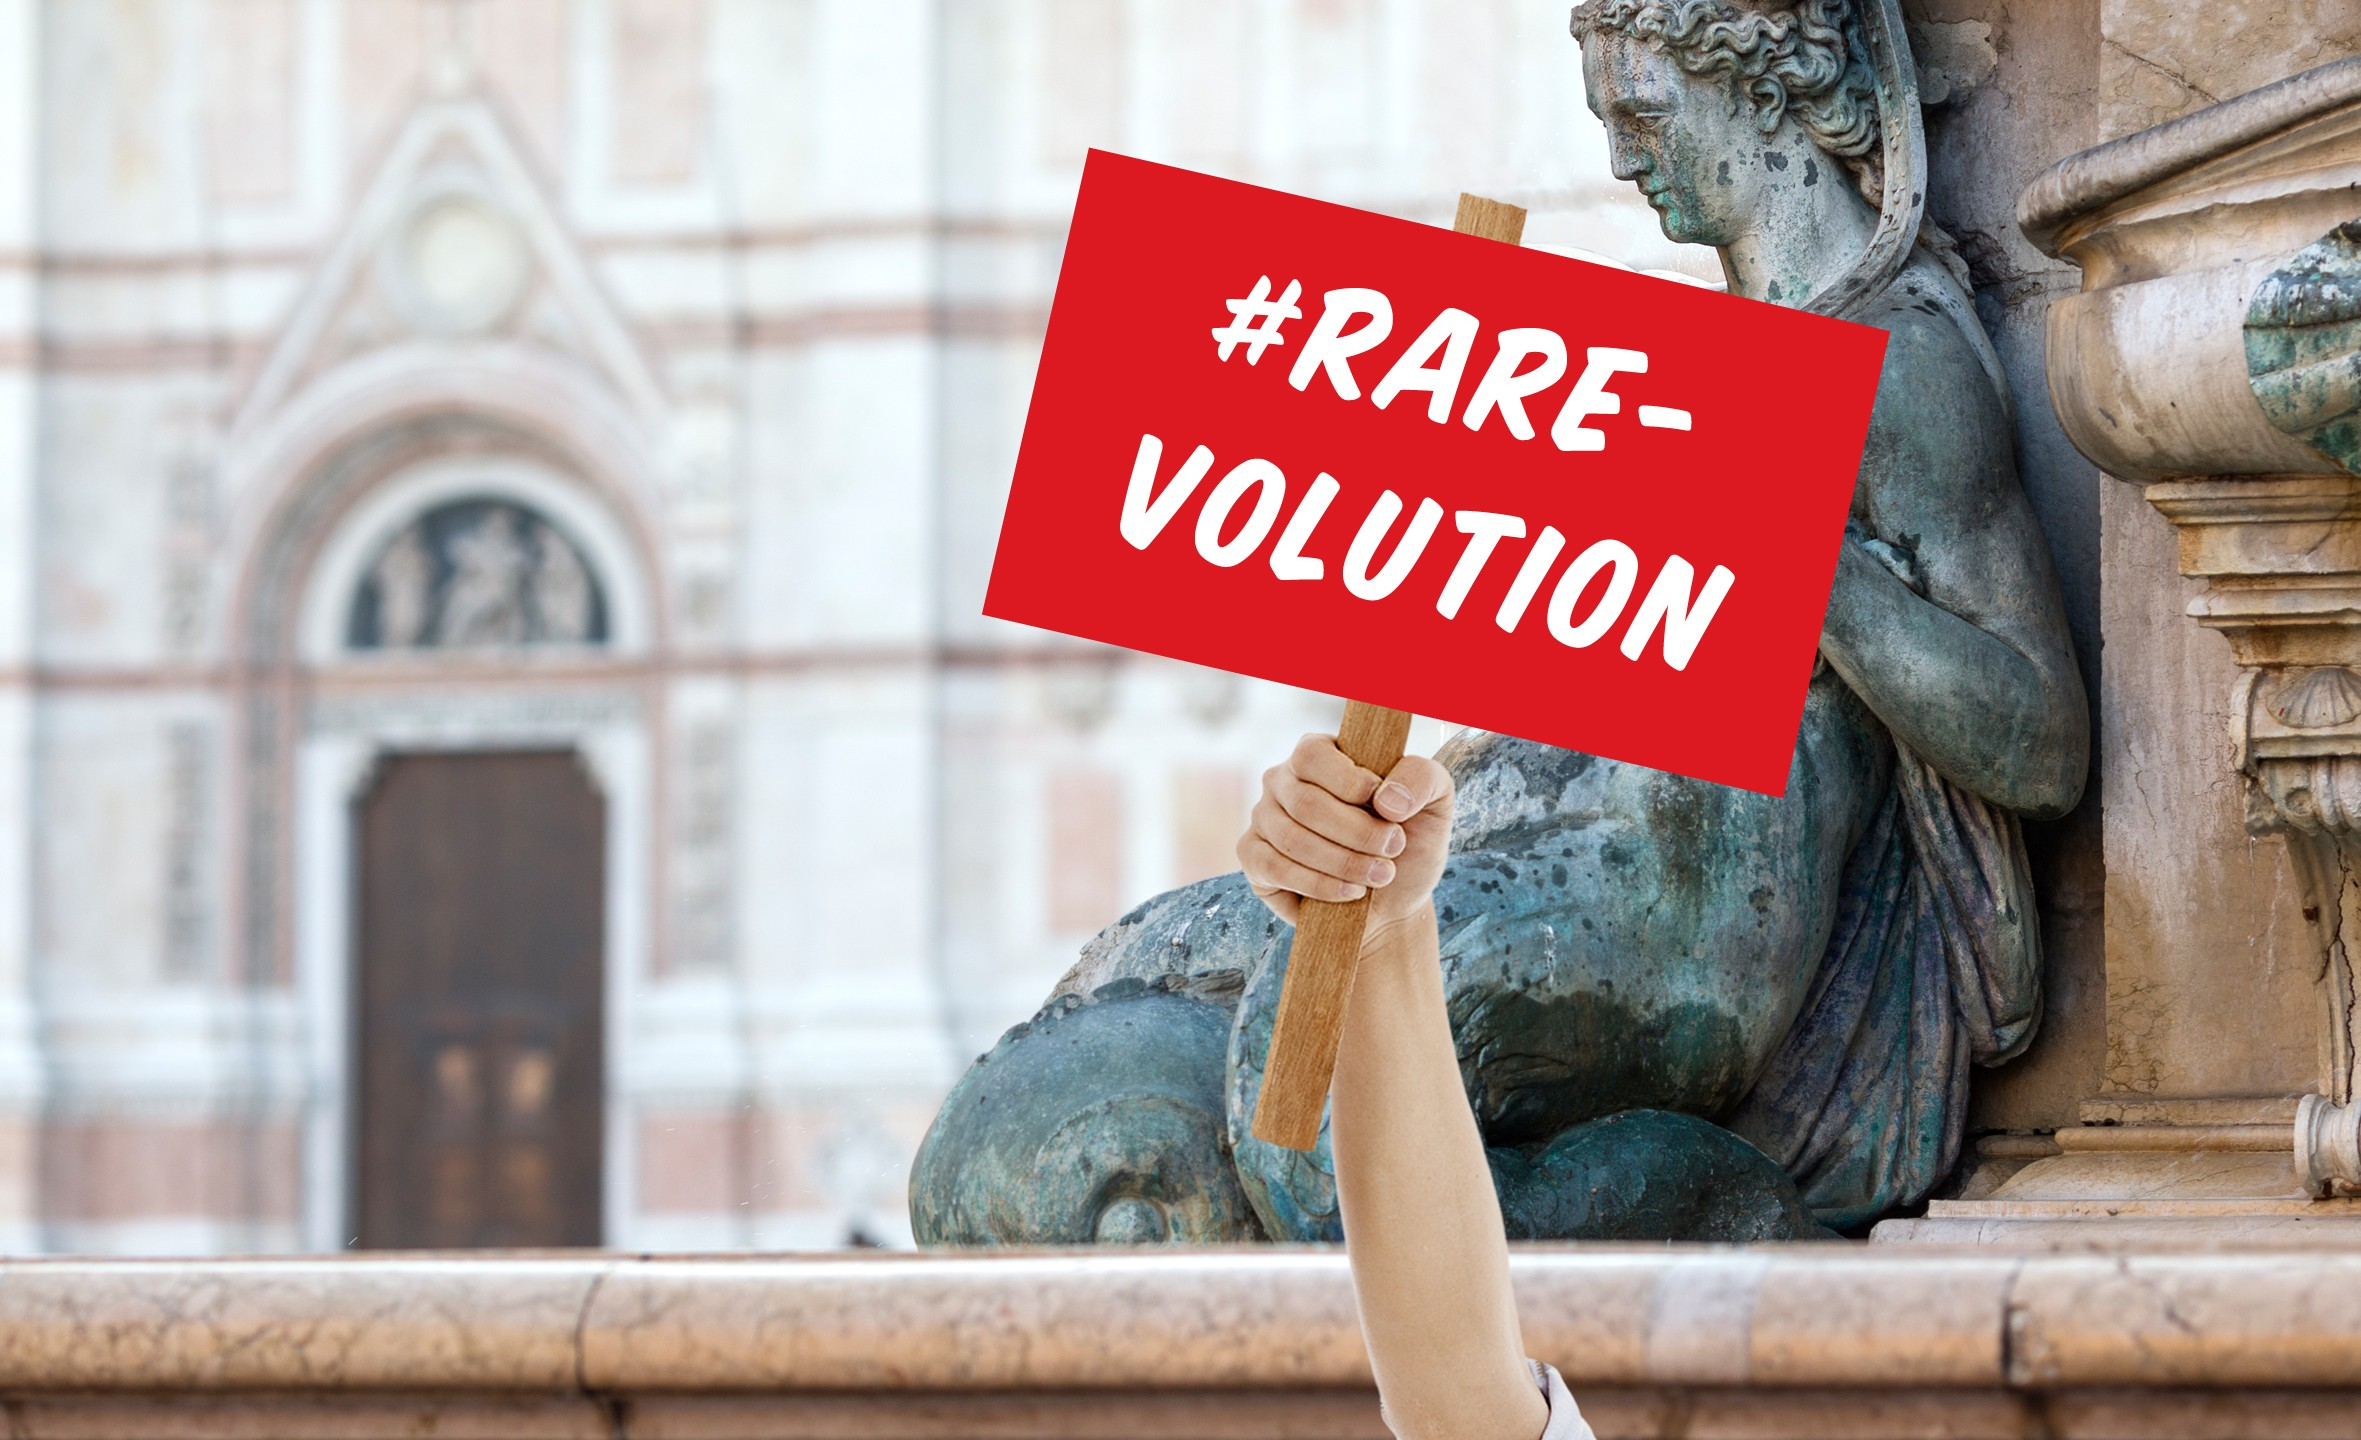 Special registration rate for the RE(ACT) Congress that will take place on March 7-10, 2018 in Bologna, Italy